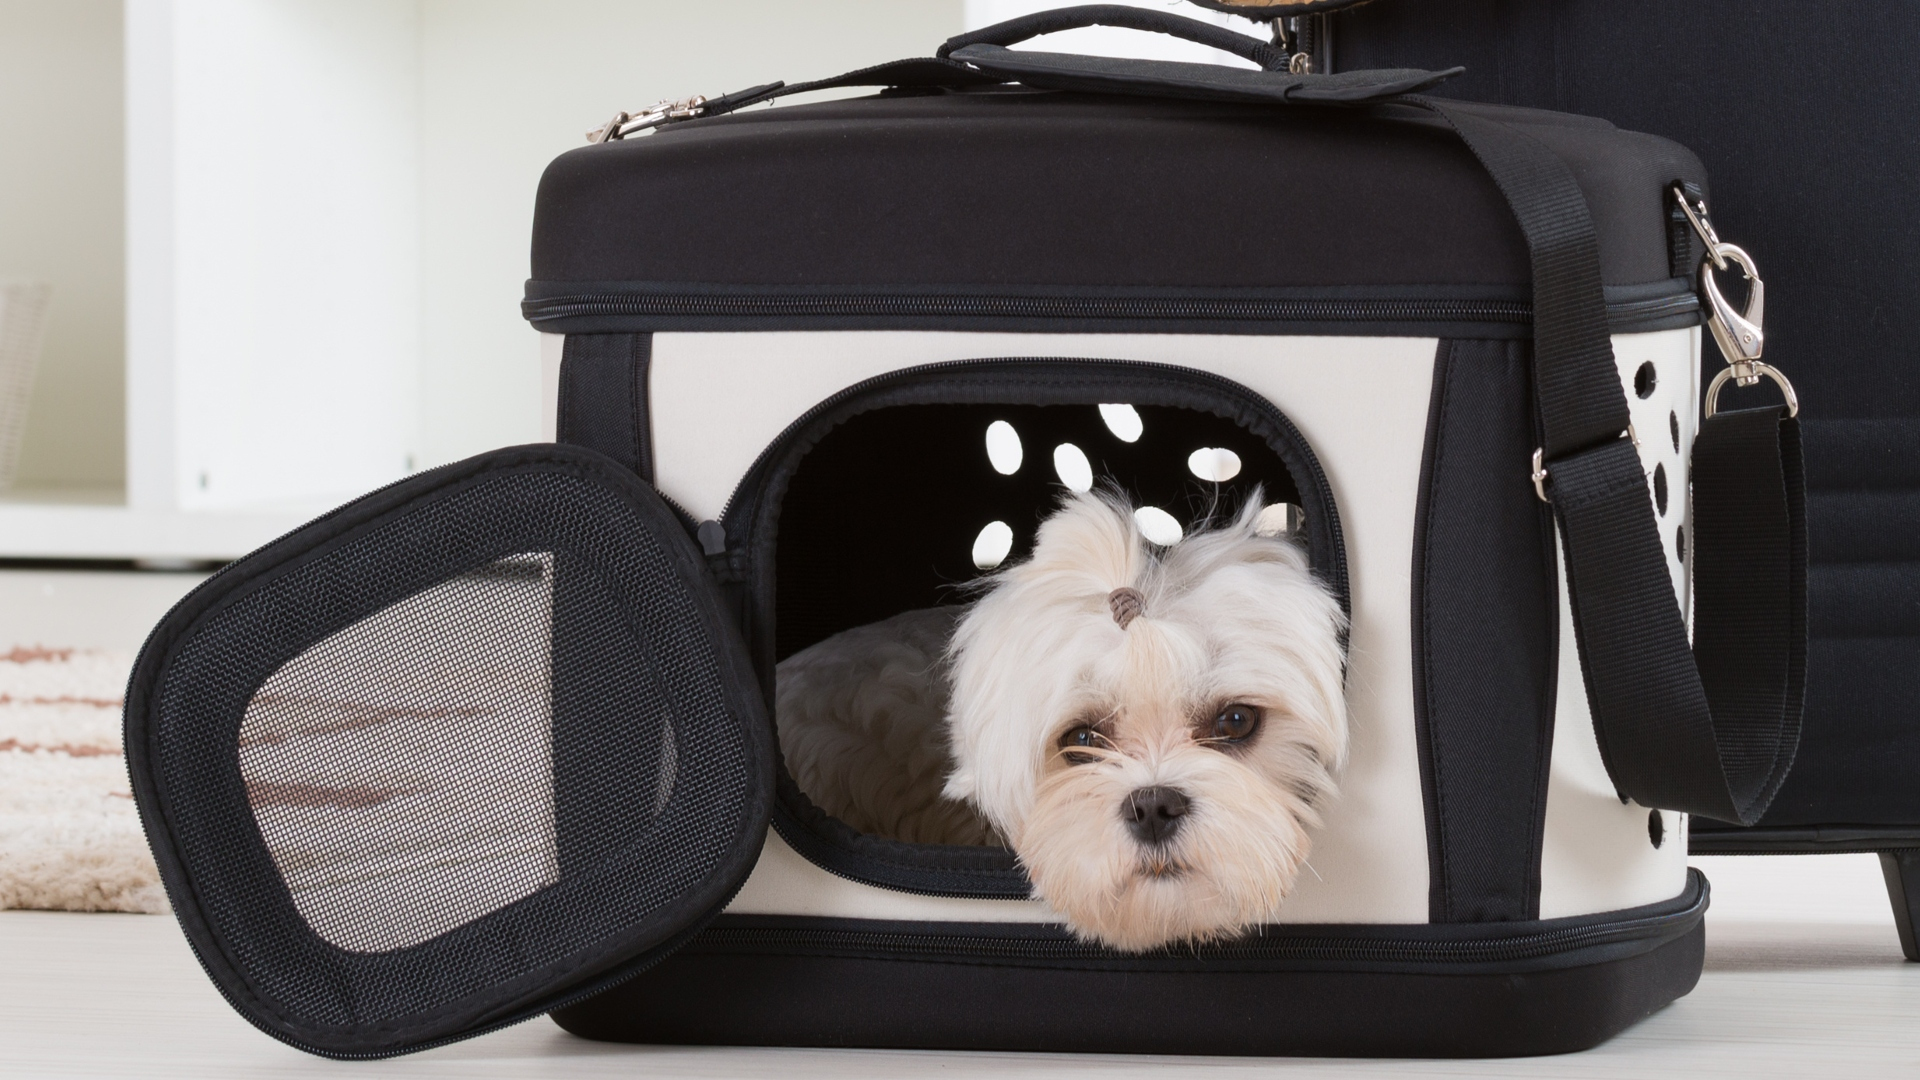 Small dog maltese sitting in his transporter or bag and waiting for a trip